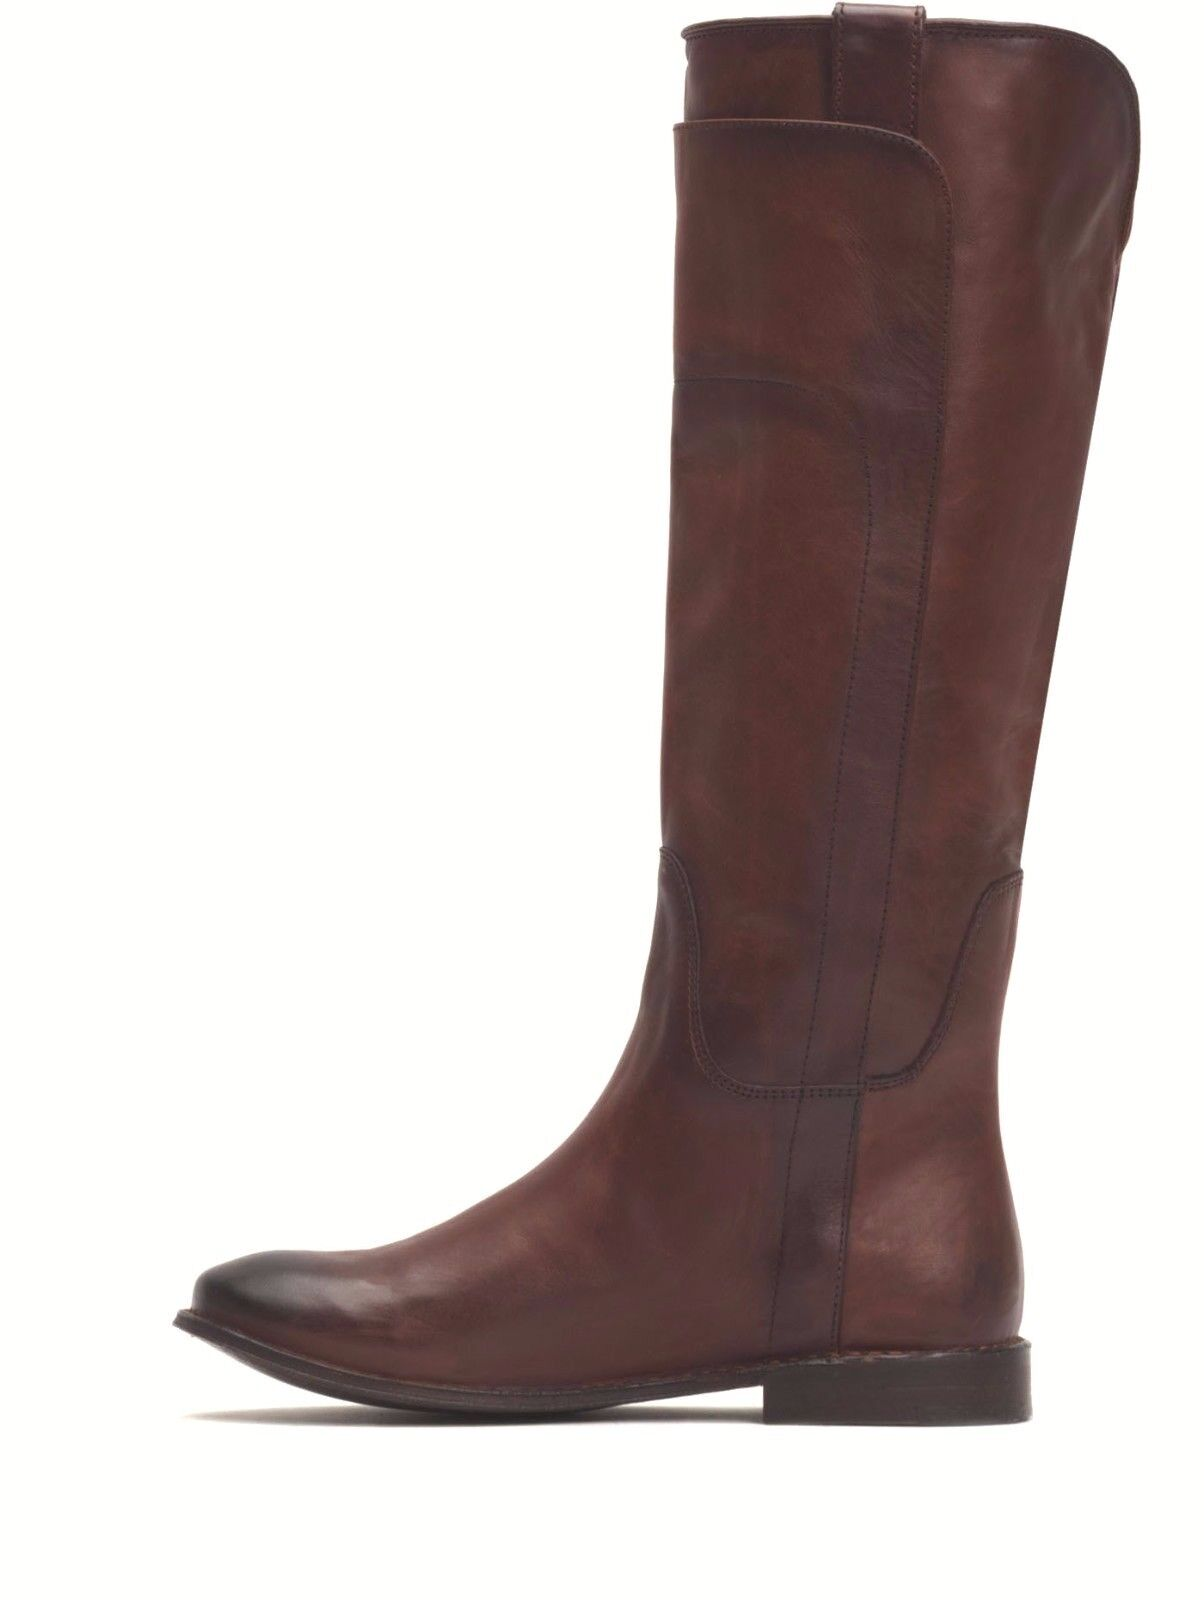 LADIES FRYE bottes PAIGE TALL IN rougeWOOD 76530